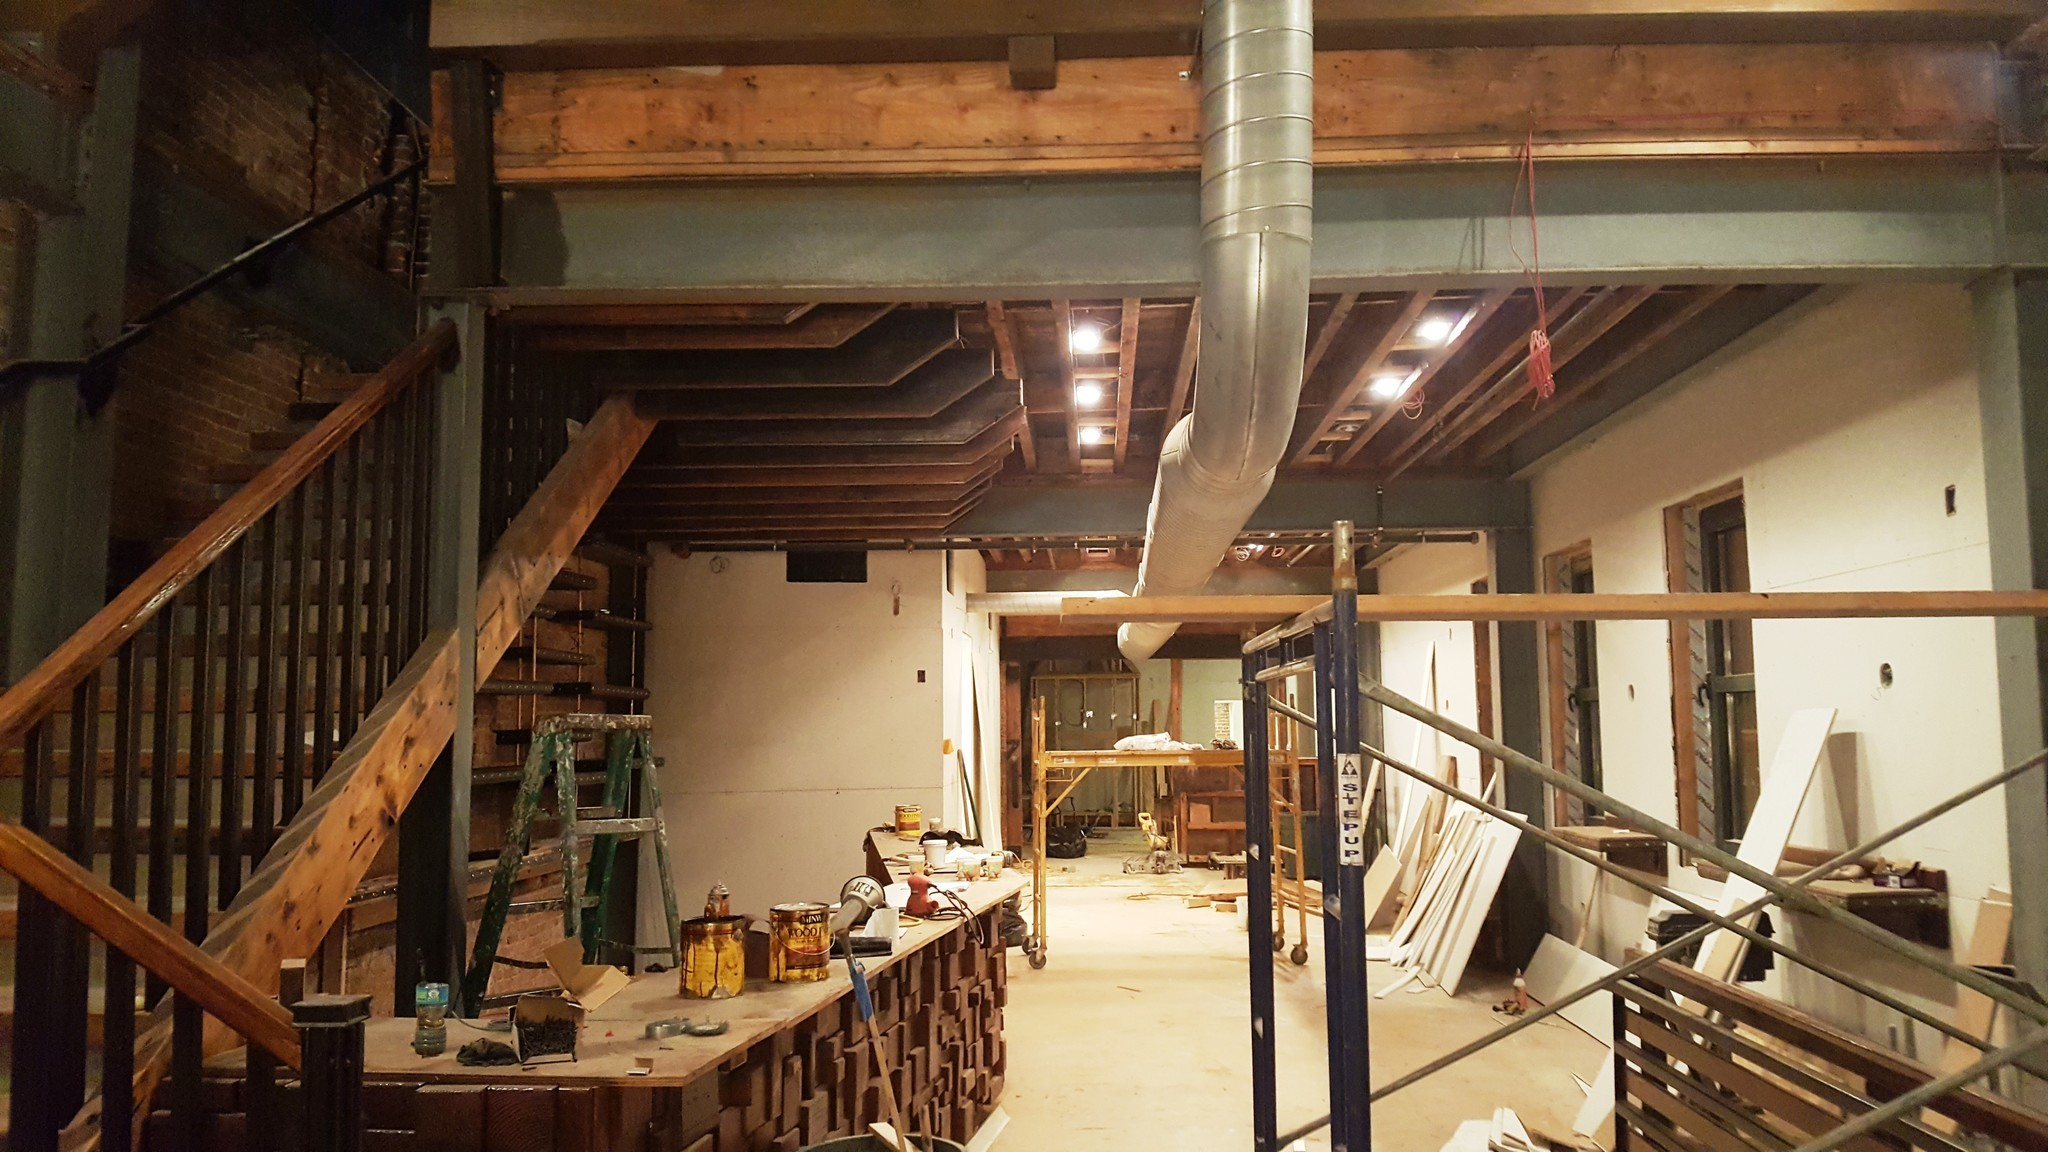 Ocean and river grille owner to open upscale steakhouse in for 3rd ferry fish market